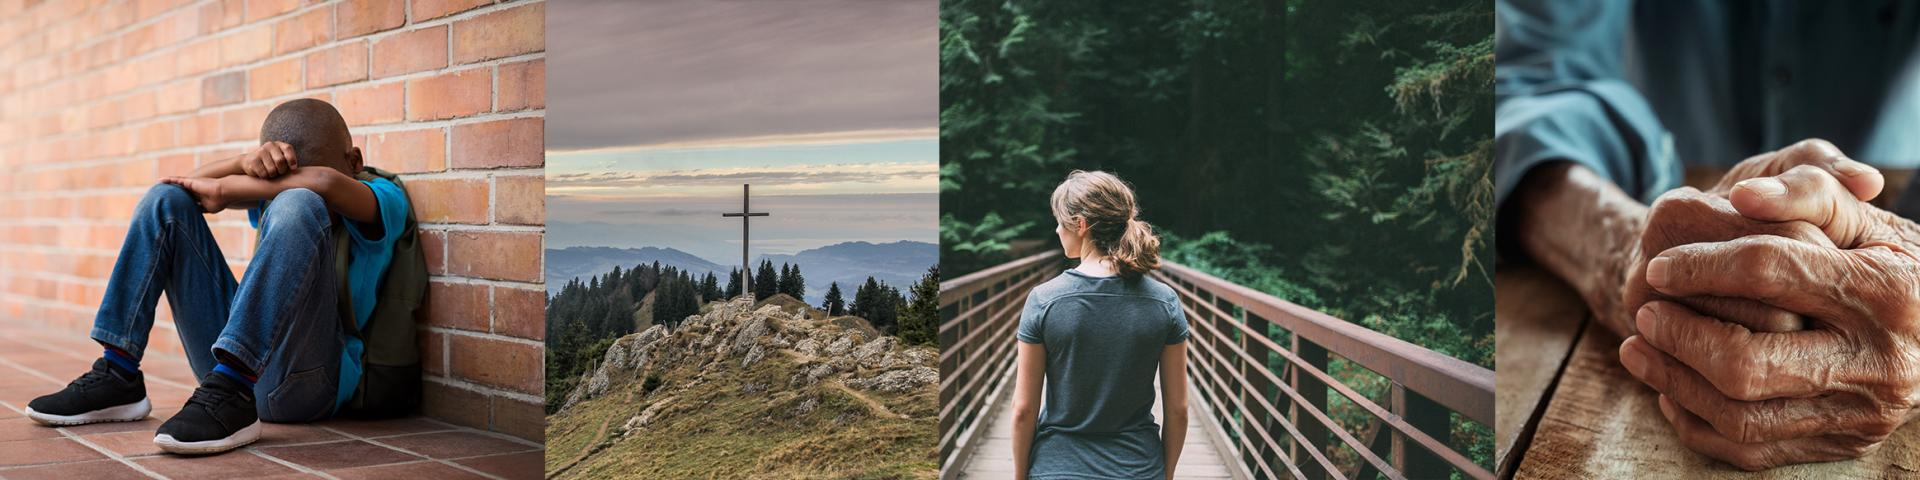 4 pictures: Young boy, woman, elderly person, and a cross.